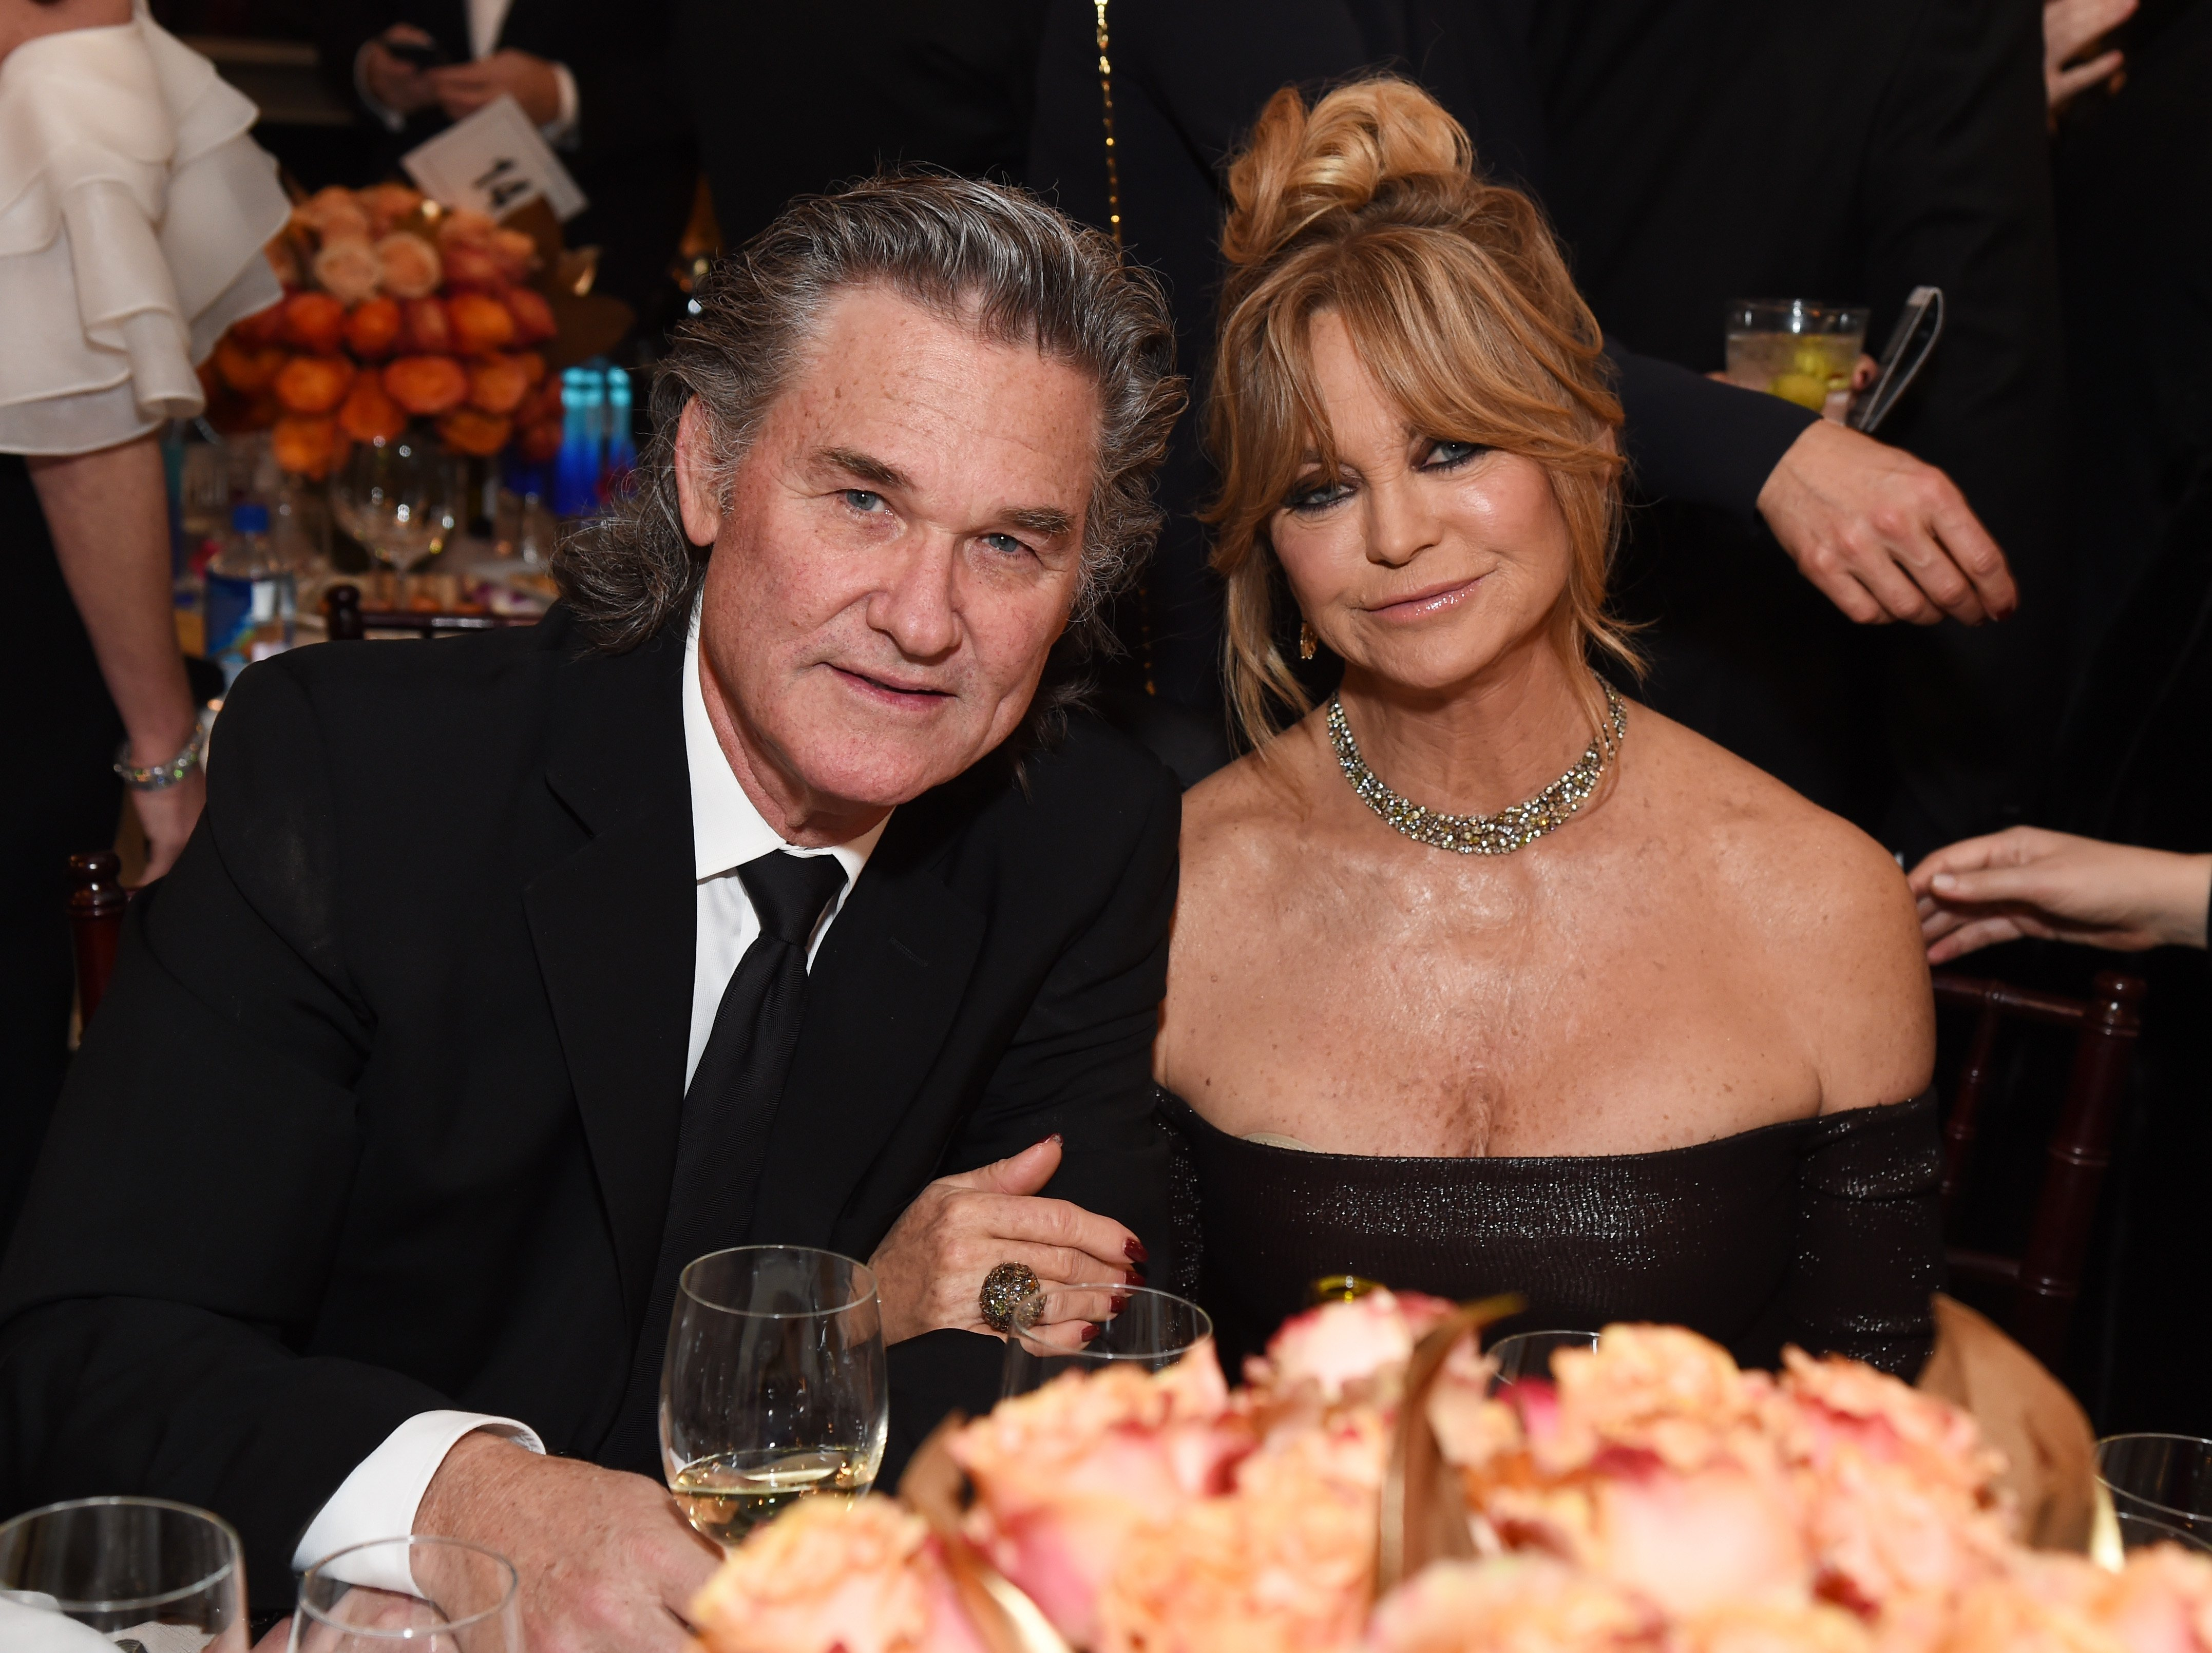 Kurt Russell and Goldie Hawn attend the 74th Annual Golden Globe Awards in Beverly Hills, California on January 8, 2017 | Photo: Getty Images